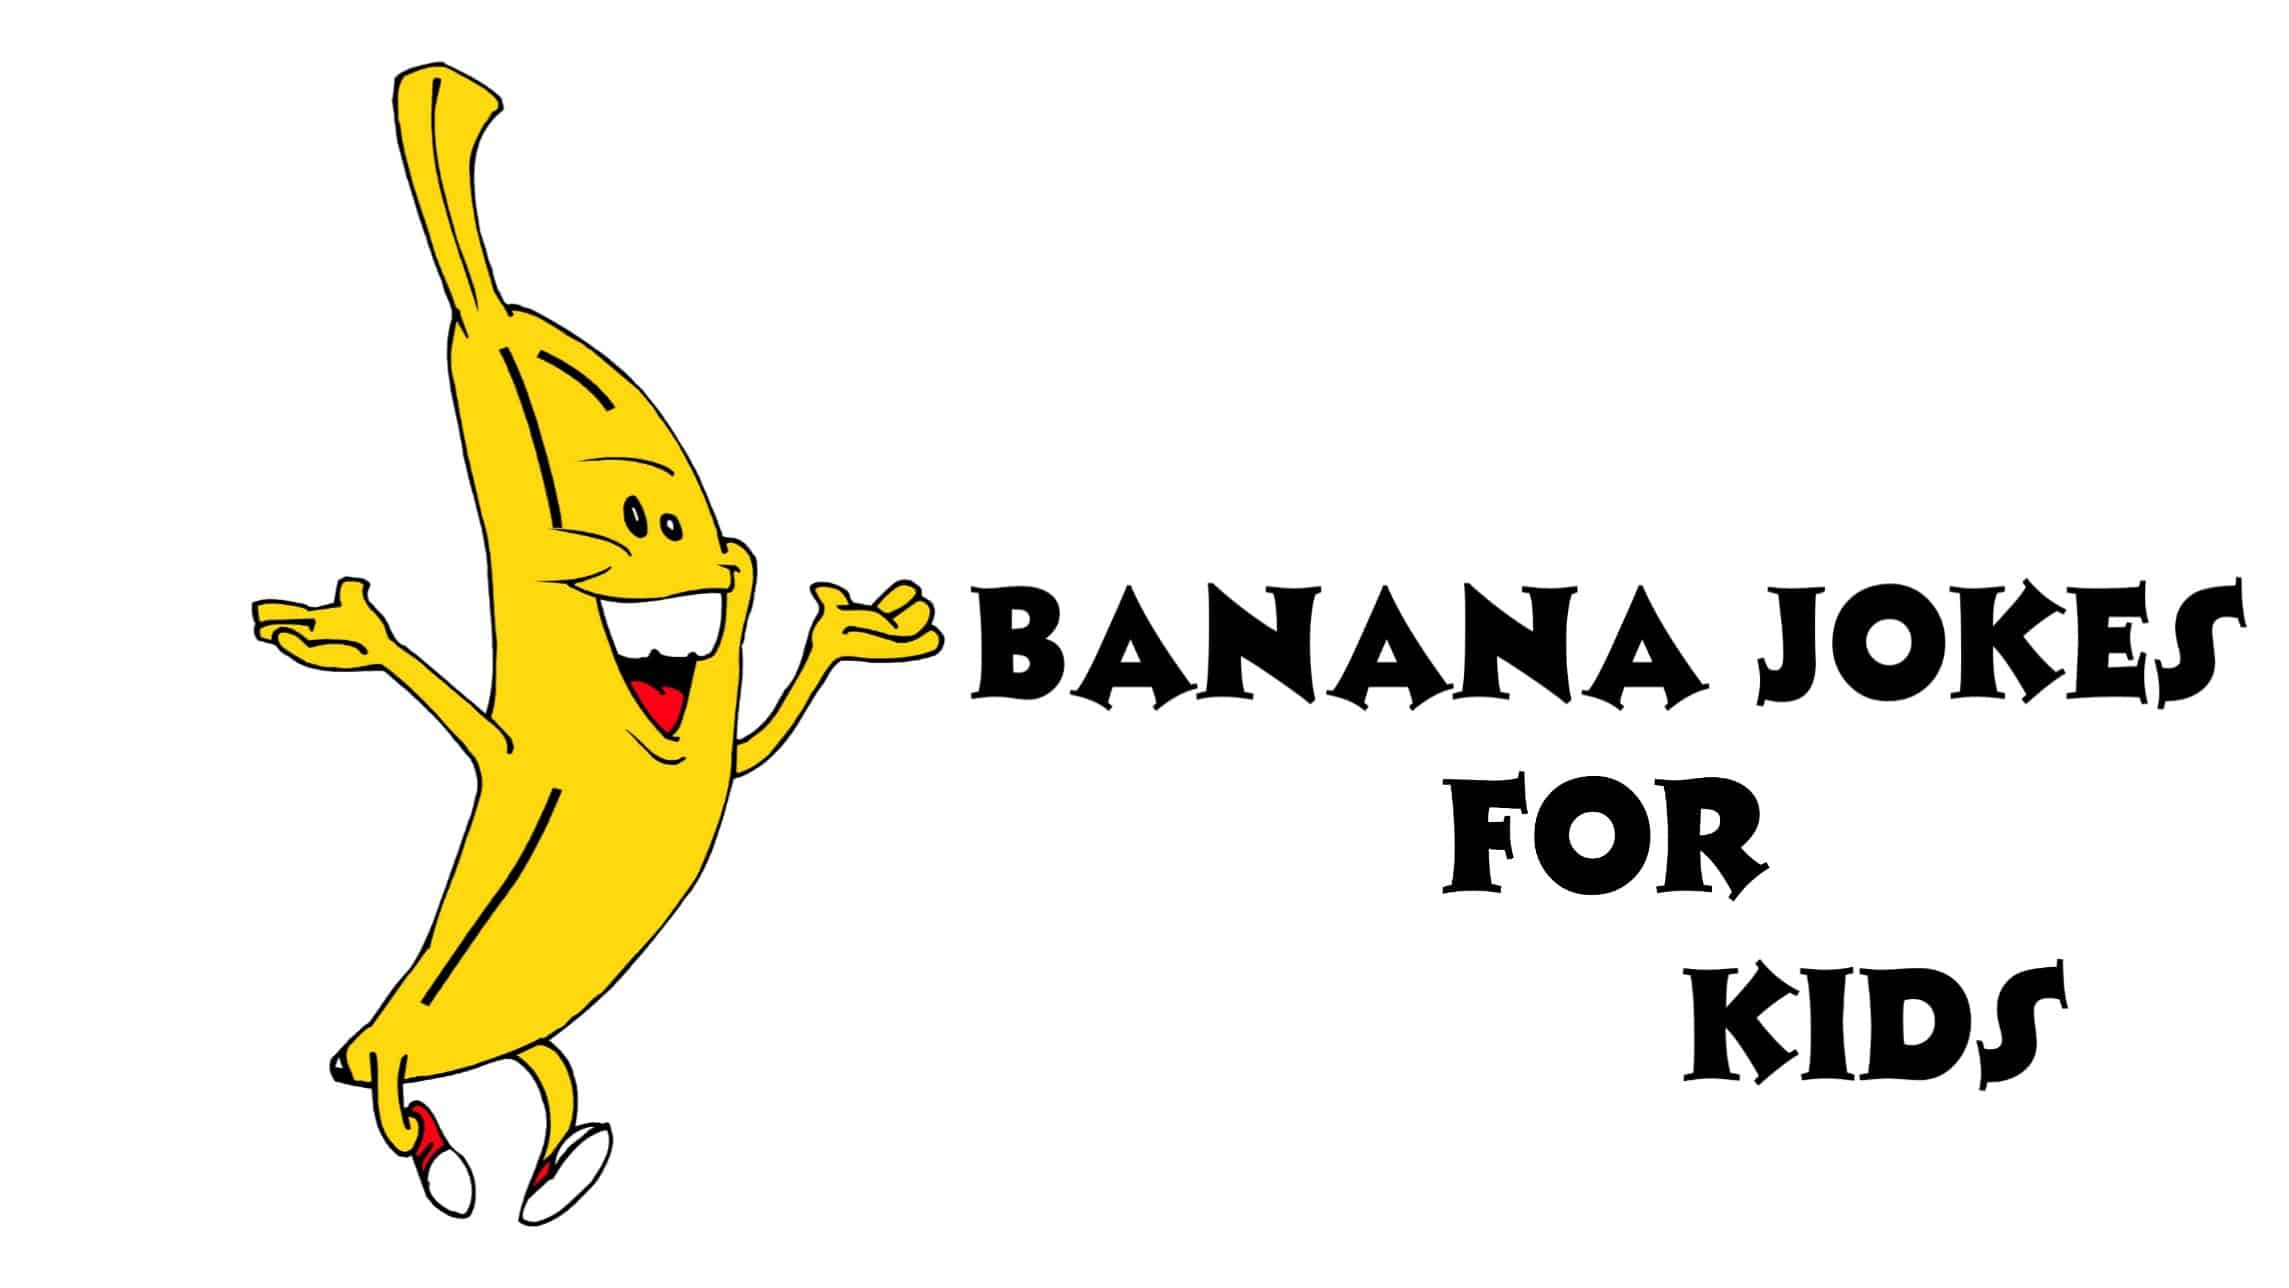 75 Great Banana jokes for kids